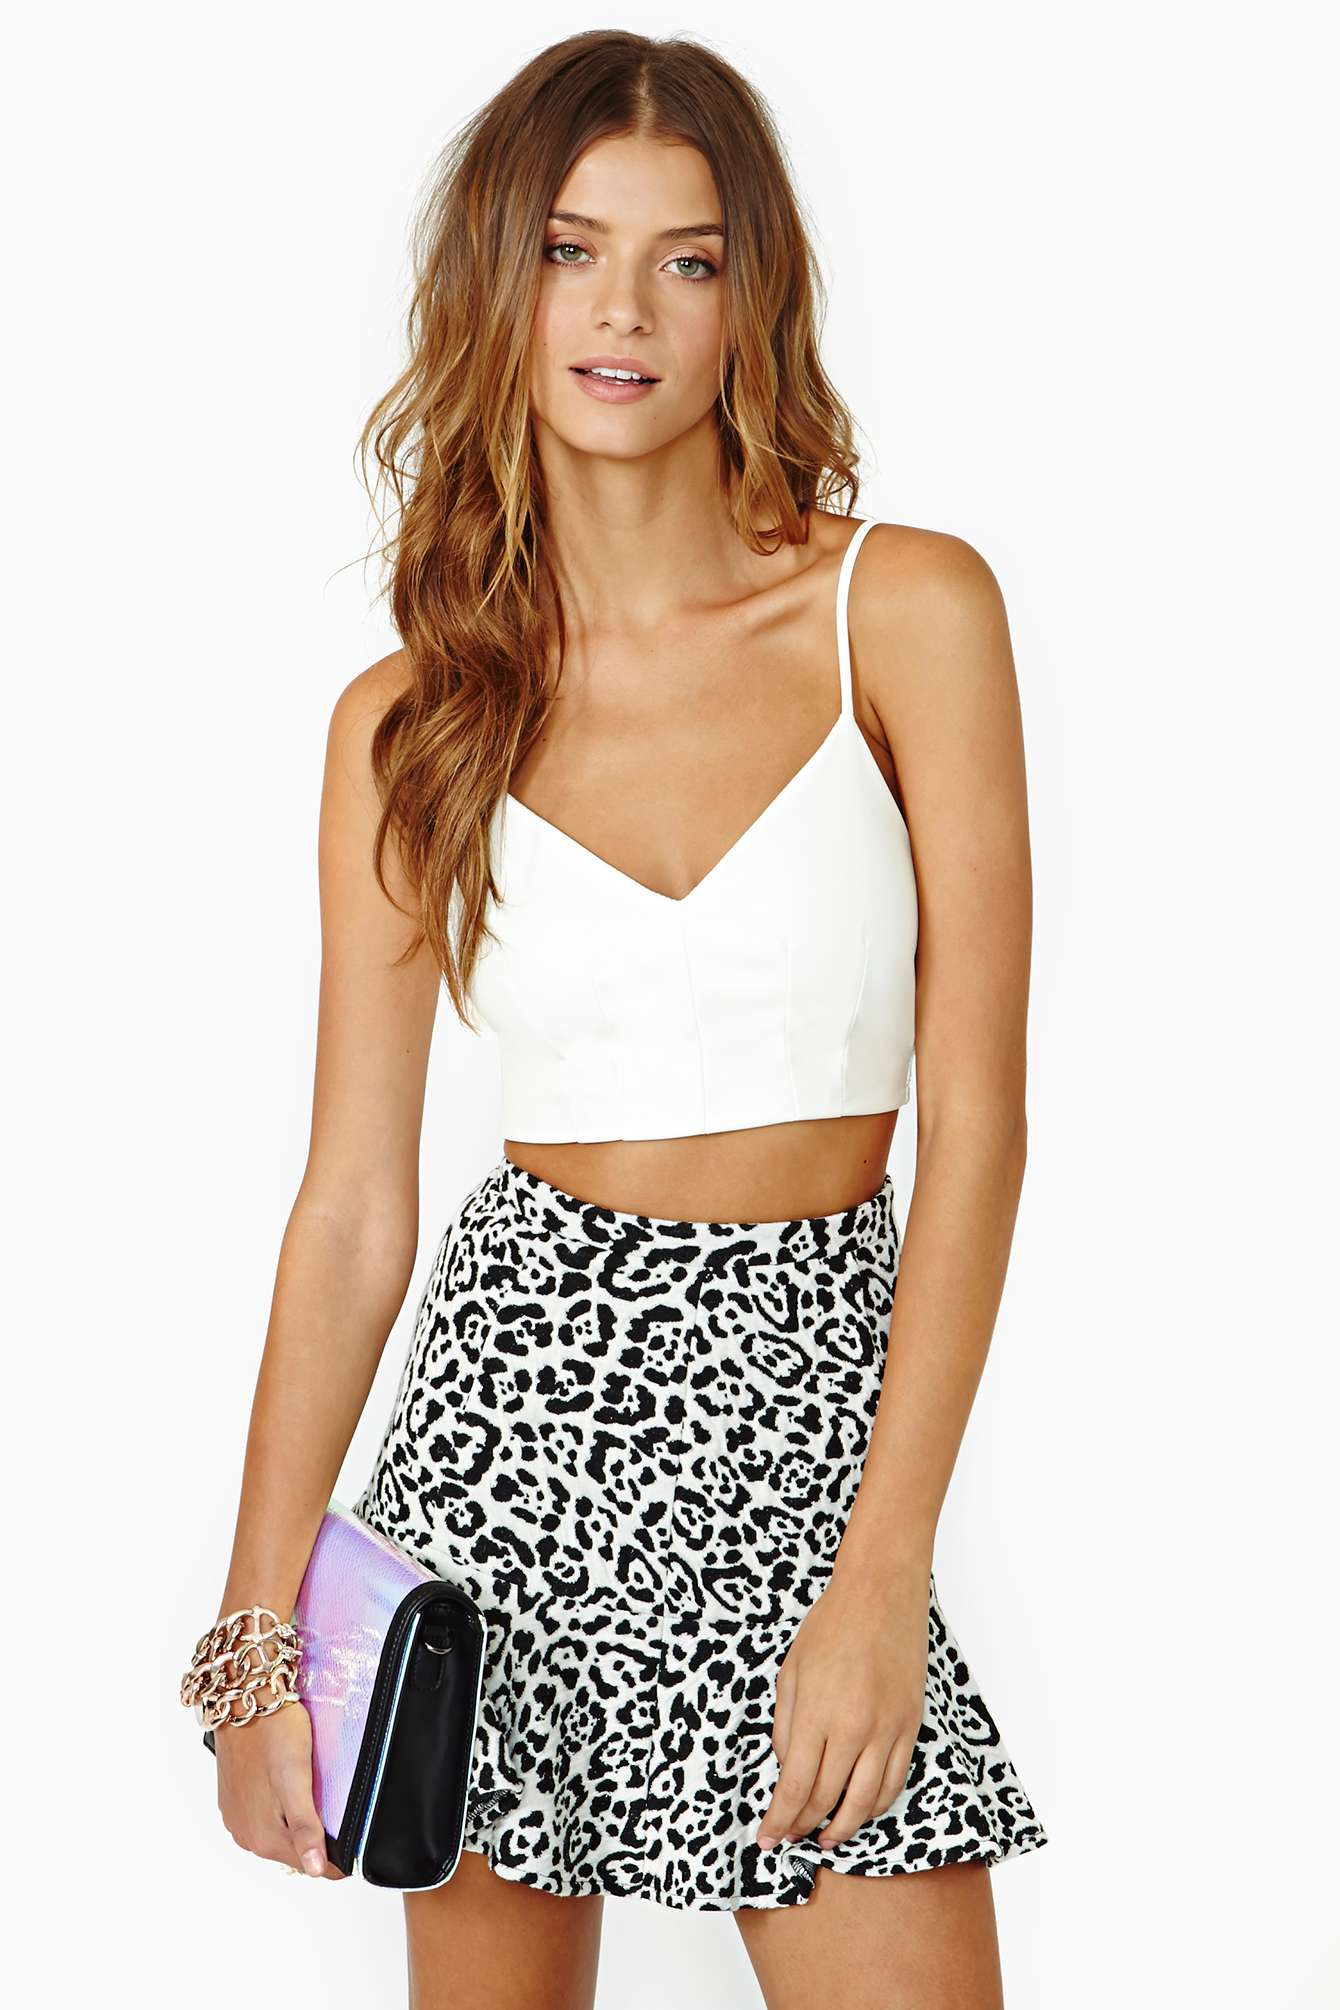 White Spaghetti Strap Faux Leather Crop Vest - Sheinside.com